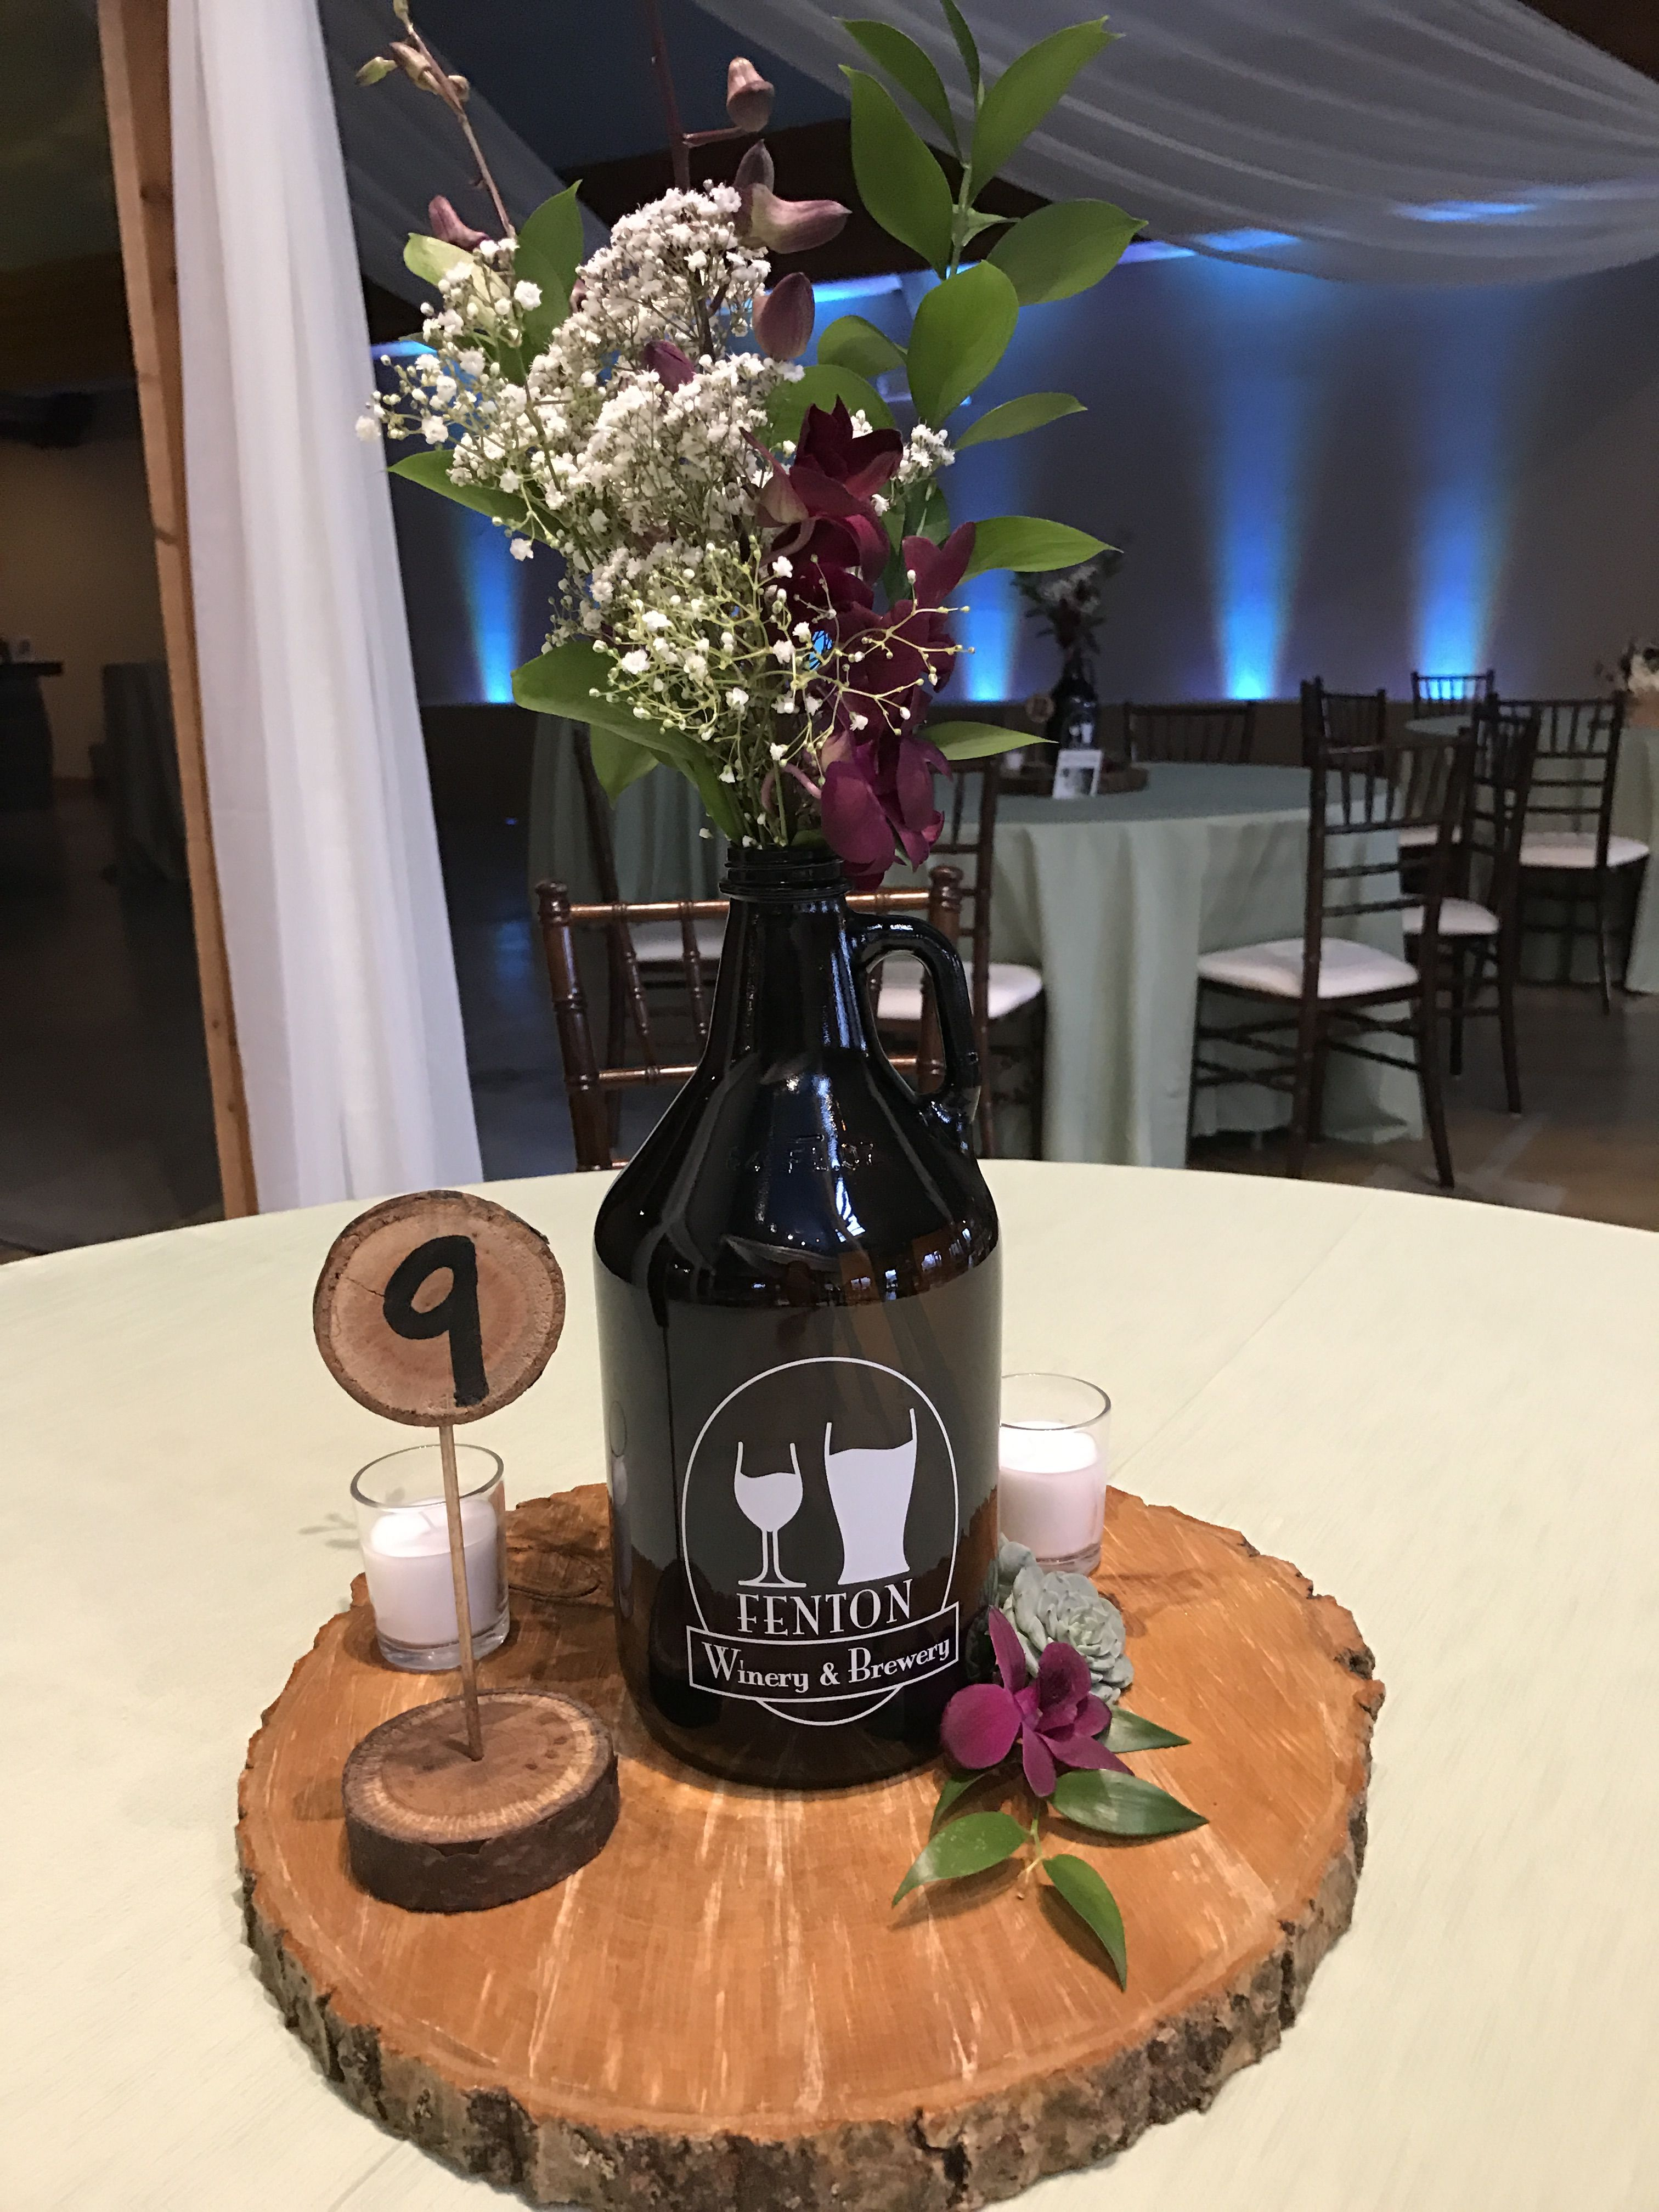 Growlers used for a table centerpiece brewery wedding rustic growlers used for a table centerpiece brewery wedding rustic outdoor theme in fenton michigan michiganweddings weddingvenue junglespirit Image collections